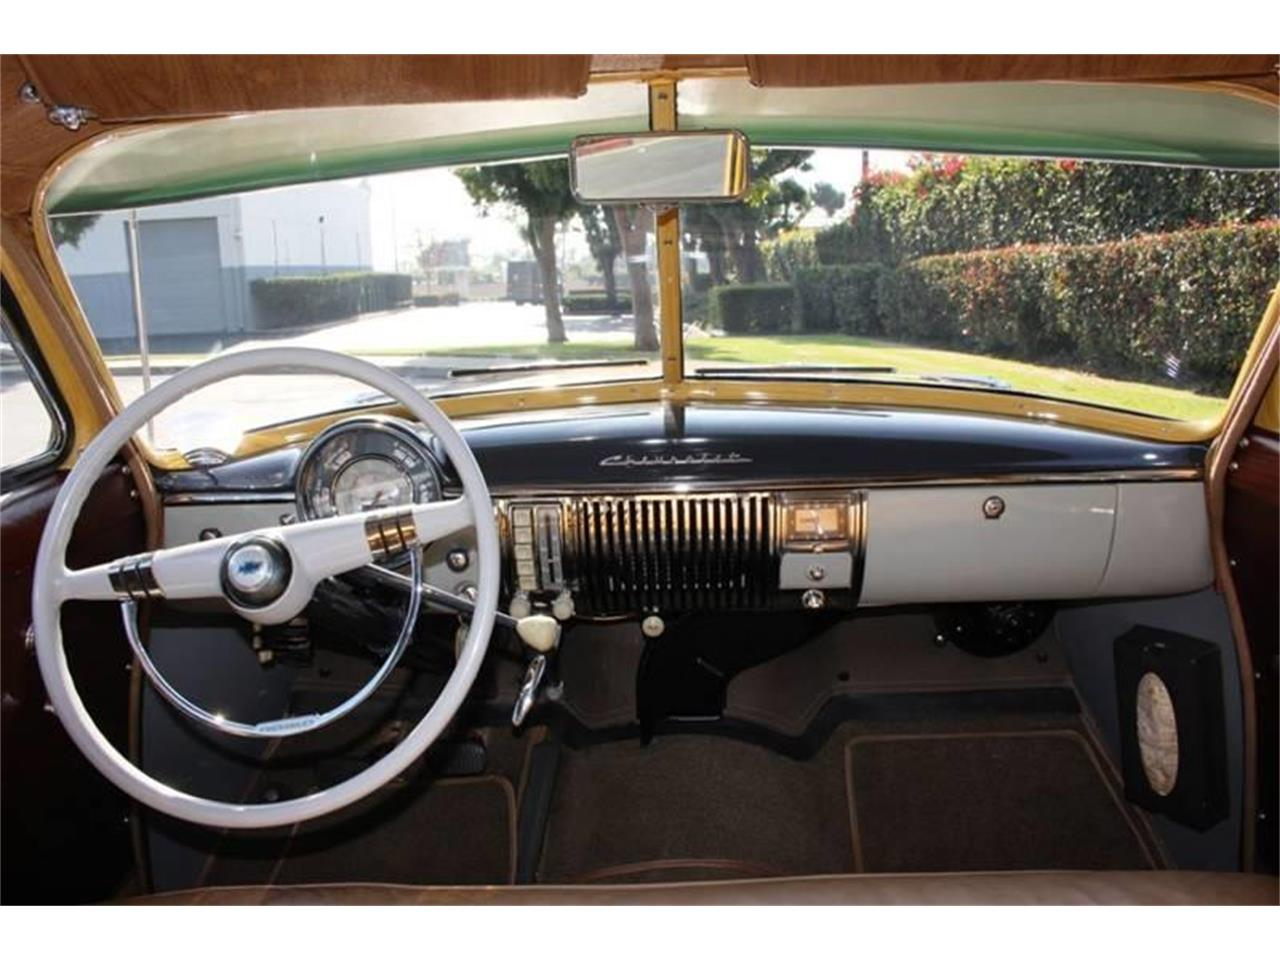 1950 Chevrolet Styleline Deluxe for sale in La Verne, CA – photo 44